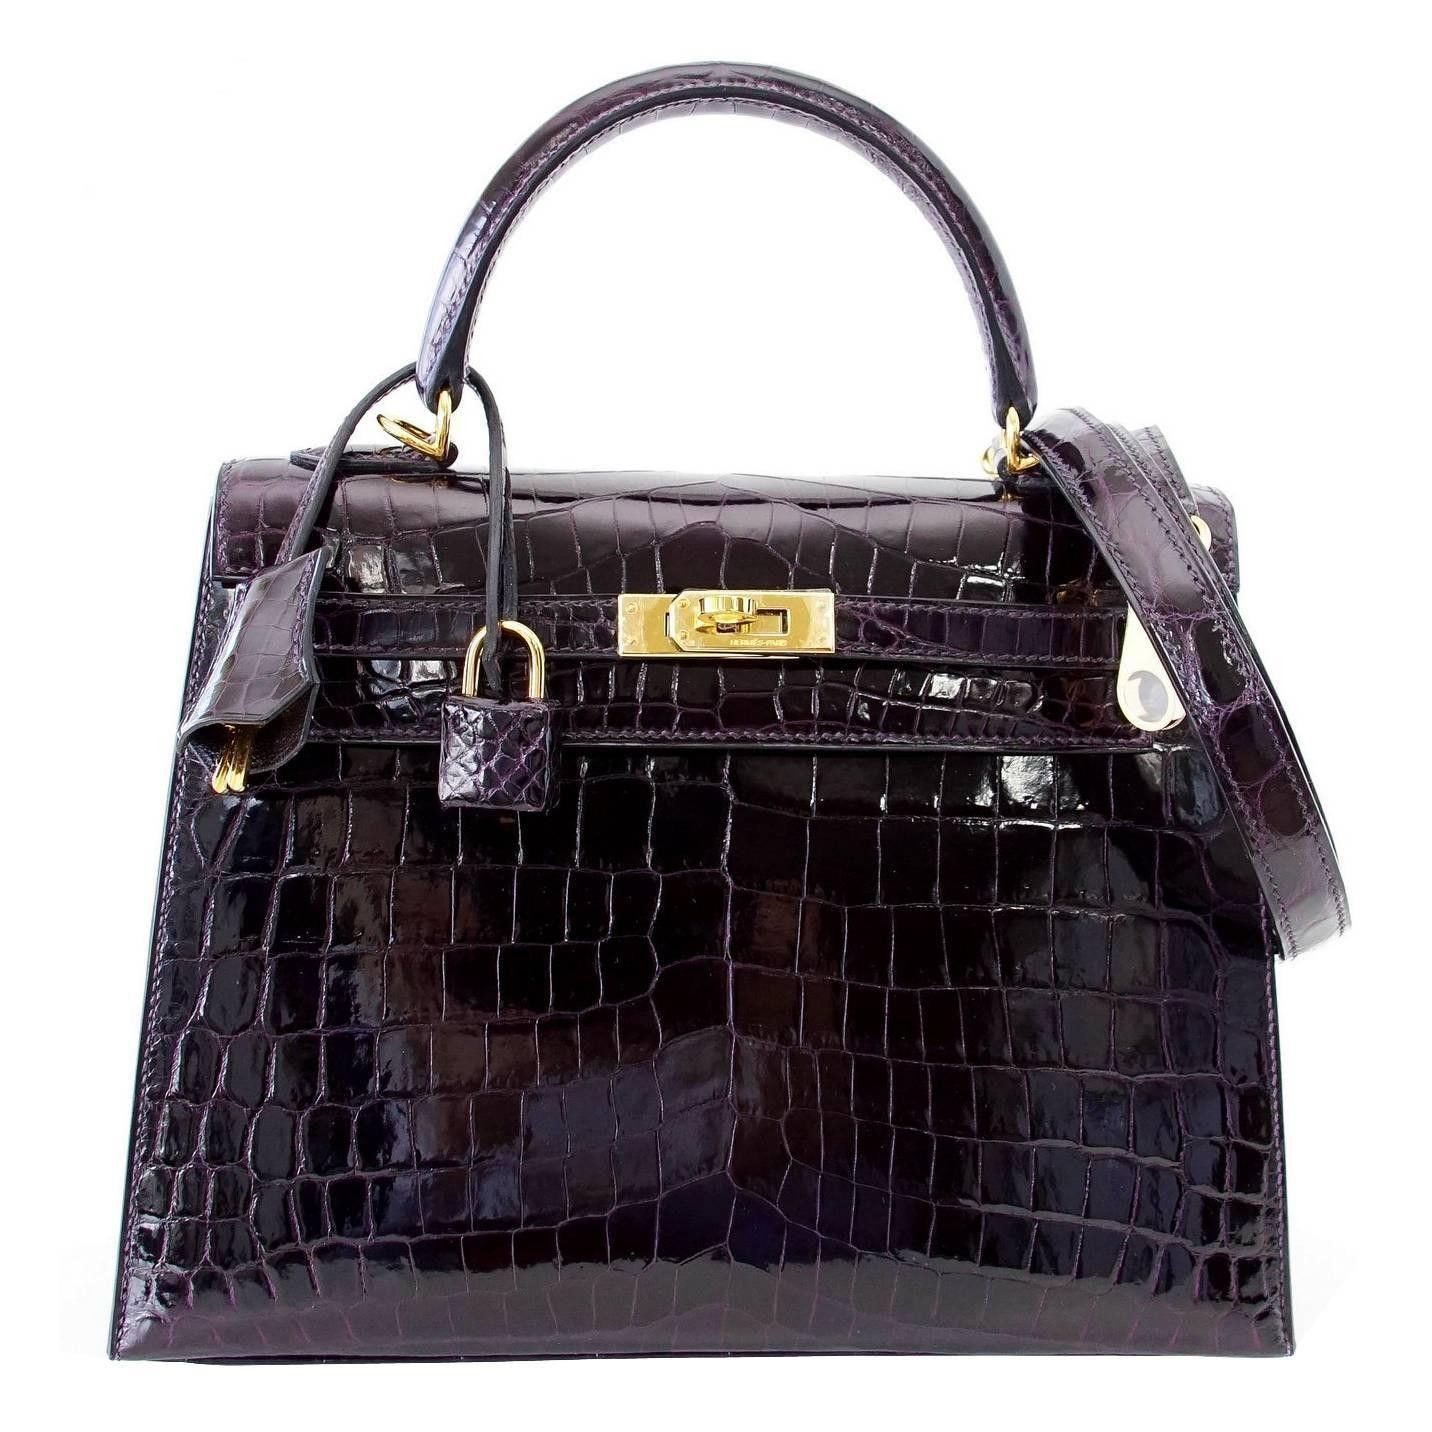 2605b7c7e0eb Hermes Kelly 25 Bag Sellier Crocodile Prunoir Gold Hardware in 2019 ...